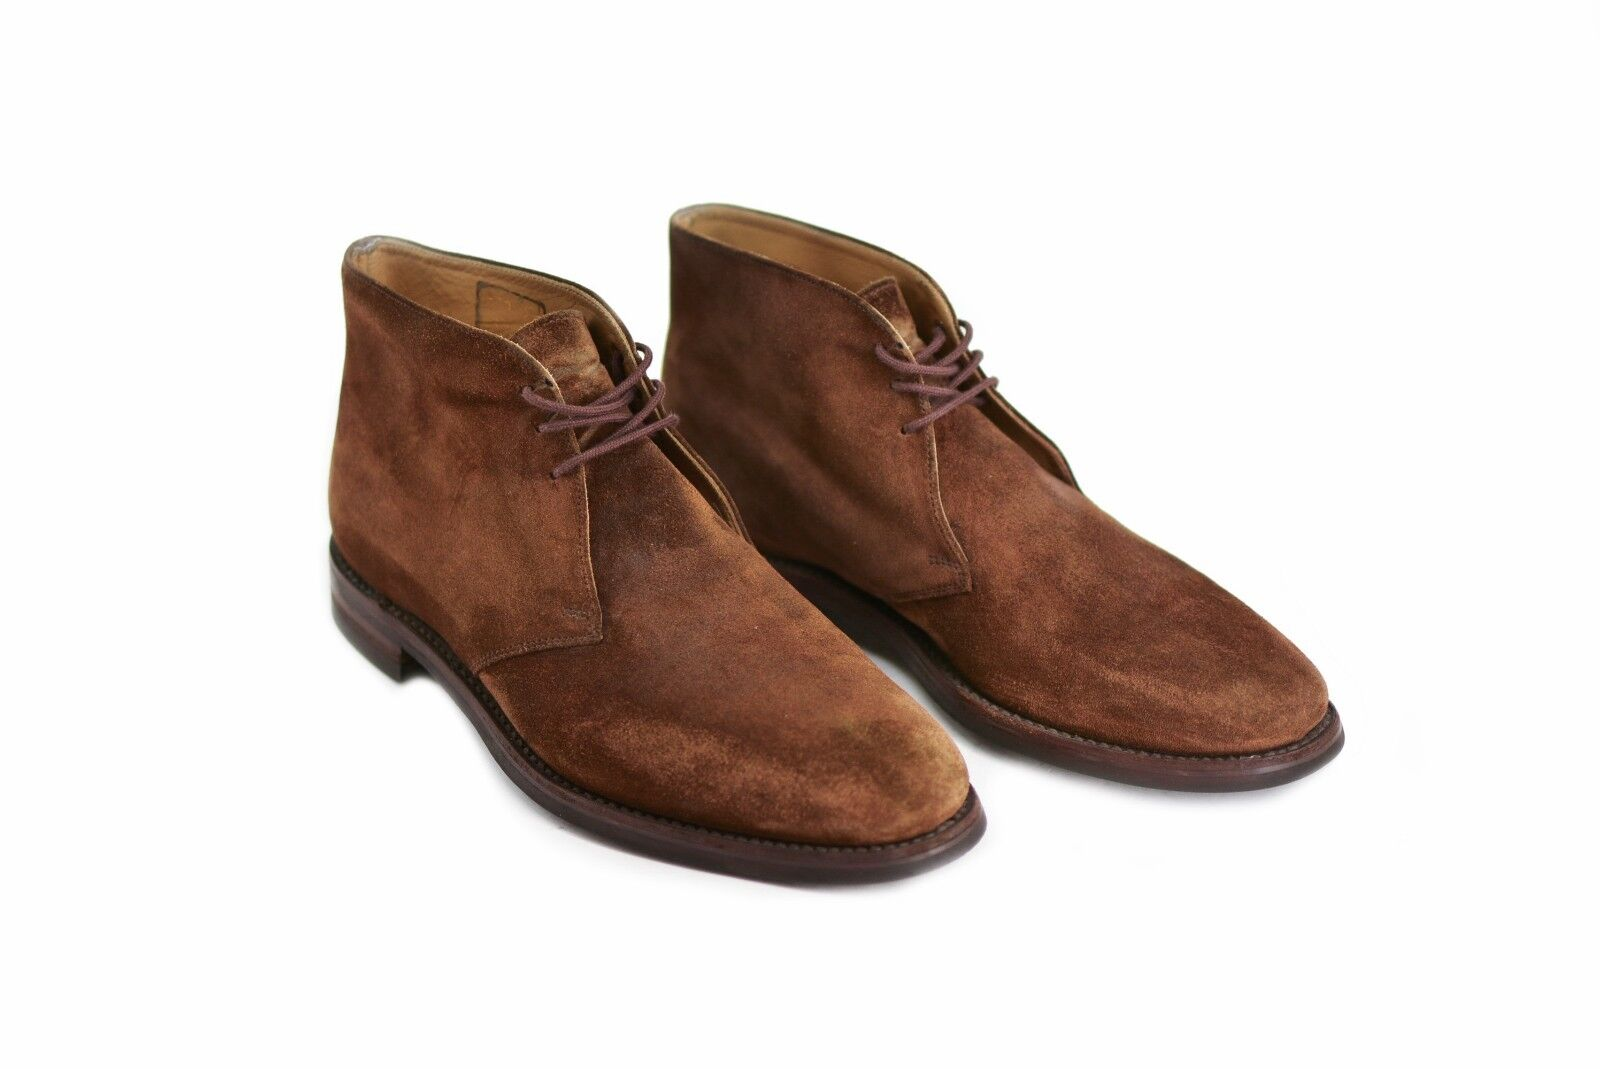 LOAKE mens boots shoes suede leather brown size outsole 31cm  ENGLAND Genuine